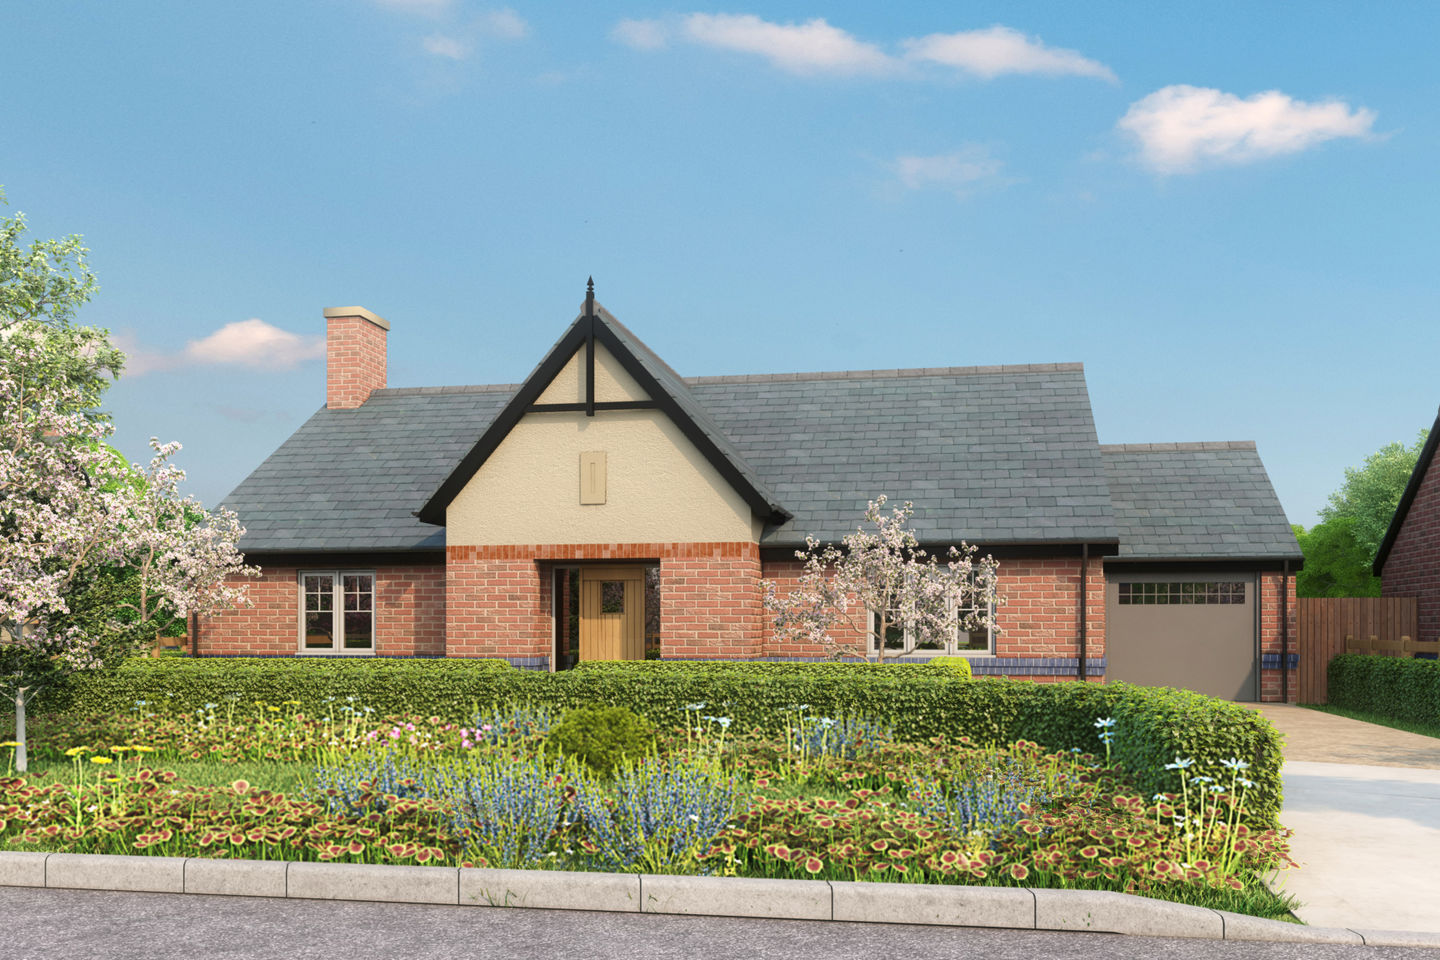 Plot 5 Colwall Gardens